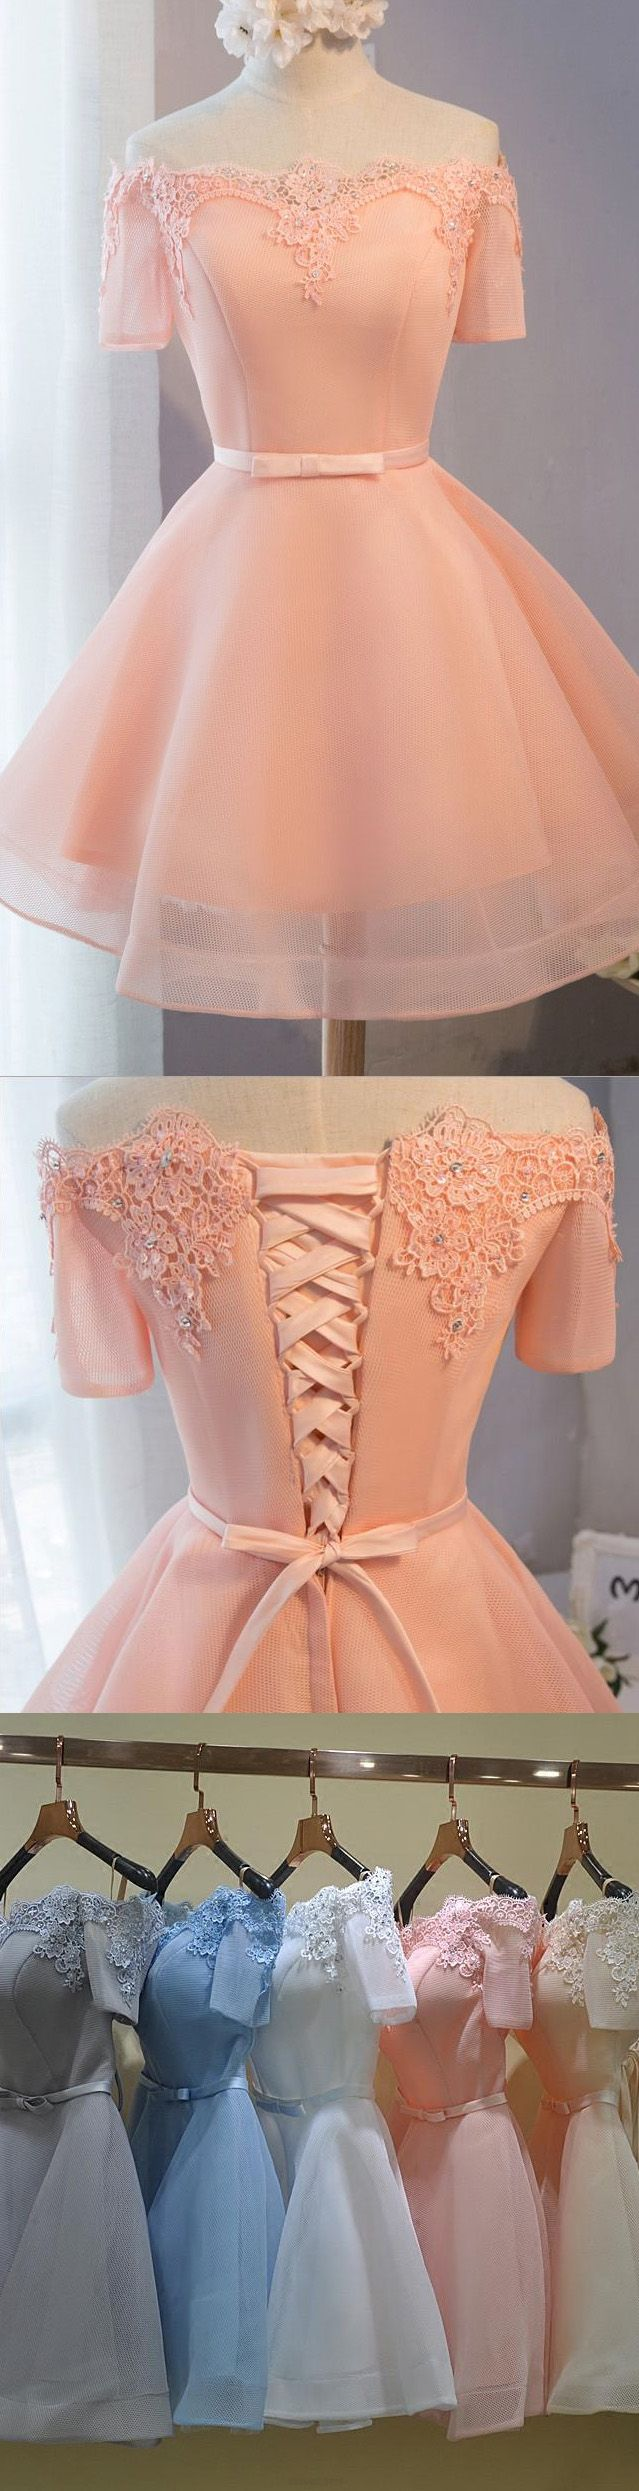 Short Prom Dresses, Pink Prom Dresses, Sexy Prom dresses, Prom Dresses Short, A Line Prom Dresses, Homecoming Dresses Short, Sexy Homecoming Dresses, Pink Homecoming Dresses, A Line dresses, Short Homecoming Dresses, Sexy Party Dresses, A line Party Dresses, Pink Party Dresses, Short Sleeve Homecoming Dresses